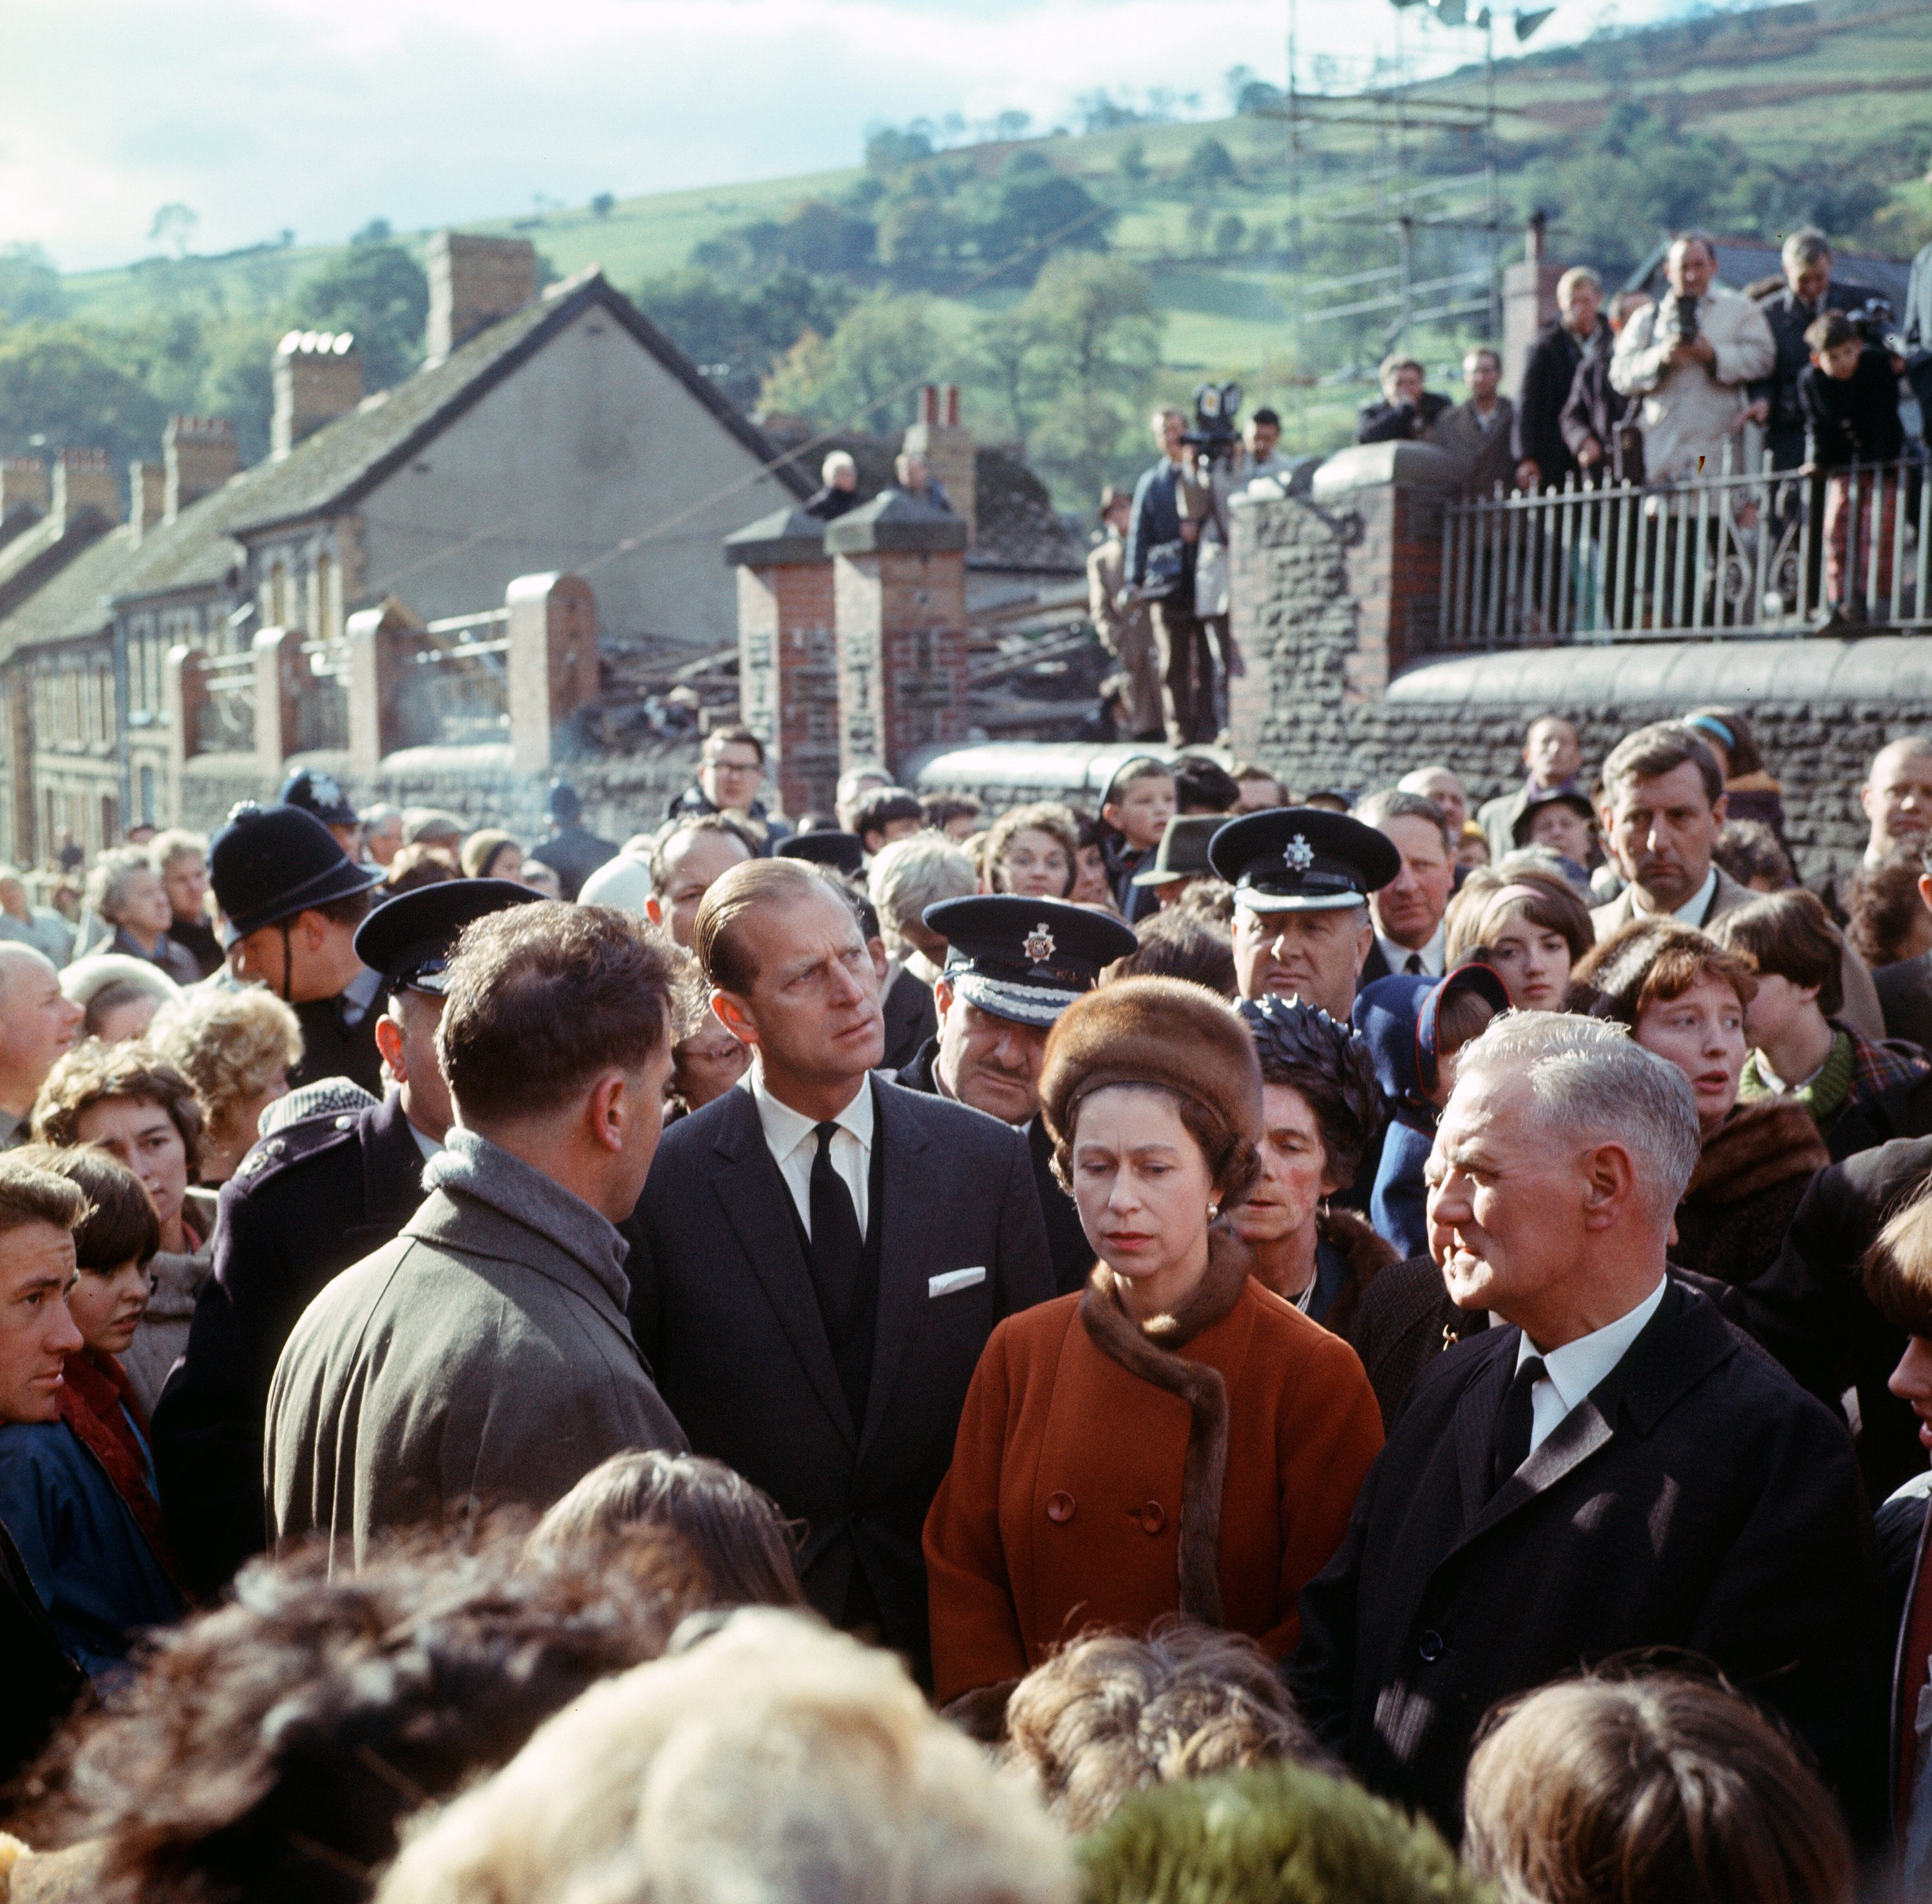 What was the Aberfan disaster, seen in 'The Crown' episode 3?